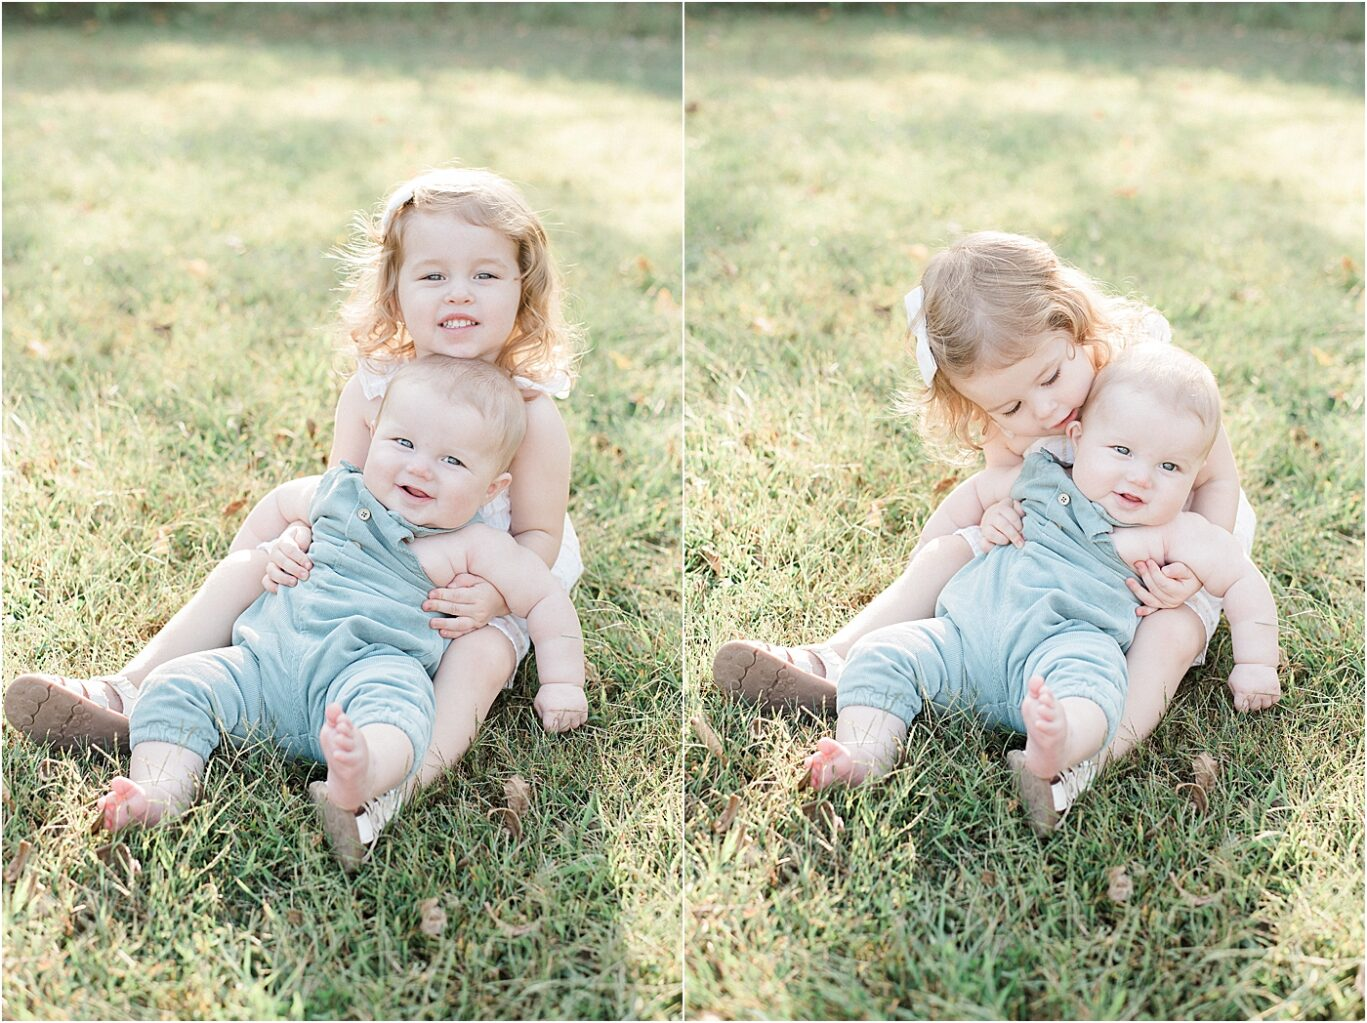 Big sister loving on her baby brother. Photos by Lindsay Konopa Photography.